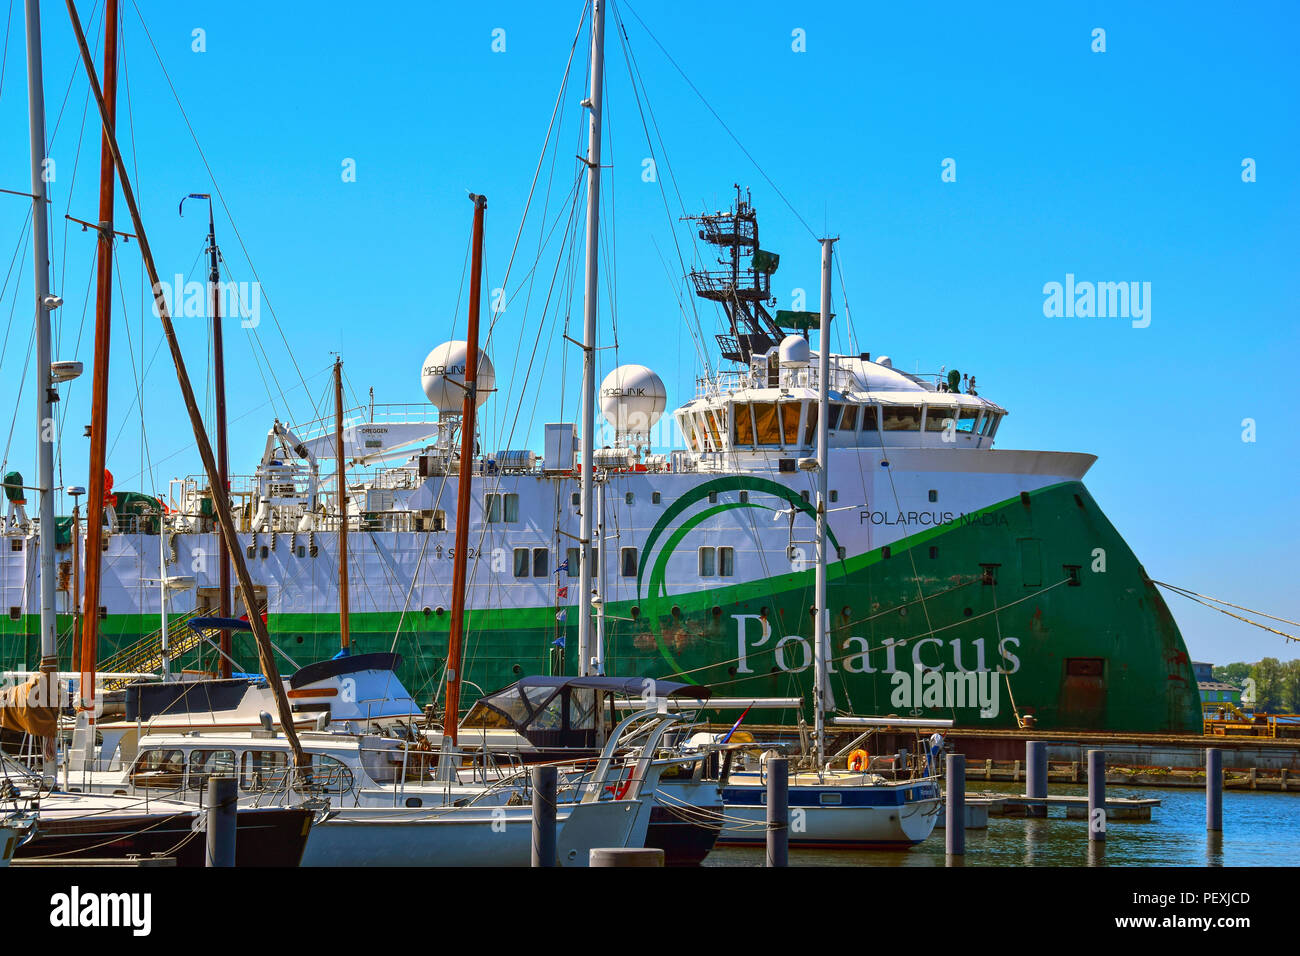 AMSTERDAM, NETHERLANDS - MAY 6, 2018: Polarcus Nadia, an ultra-modern seismic vessel, in the port of Amsterdam. - Stock Image